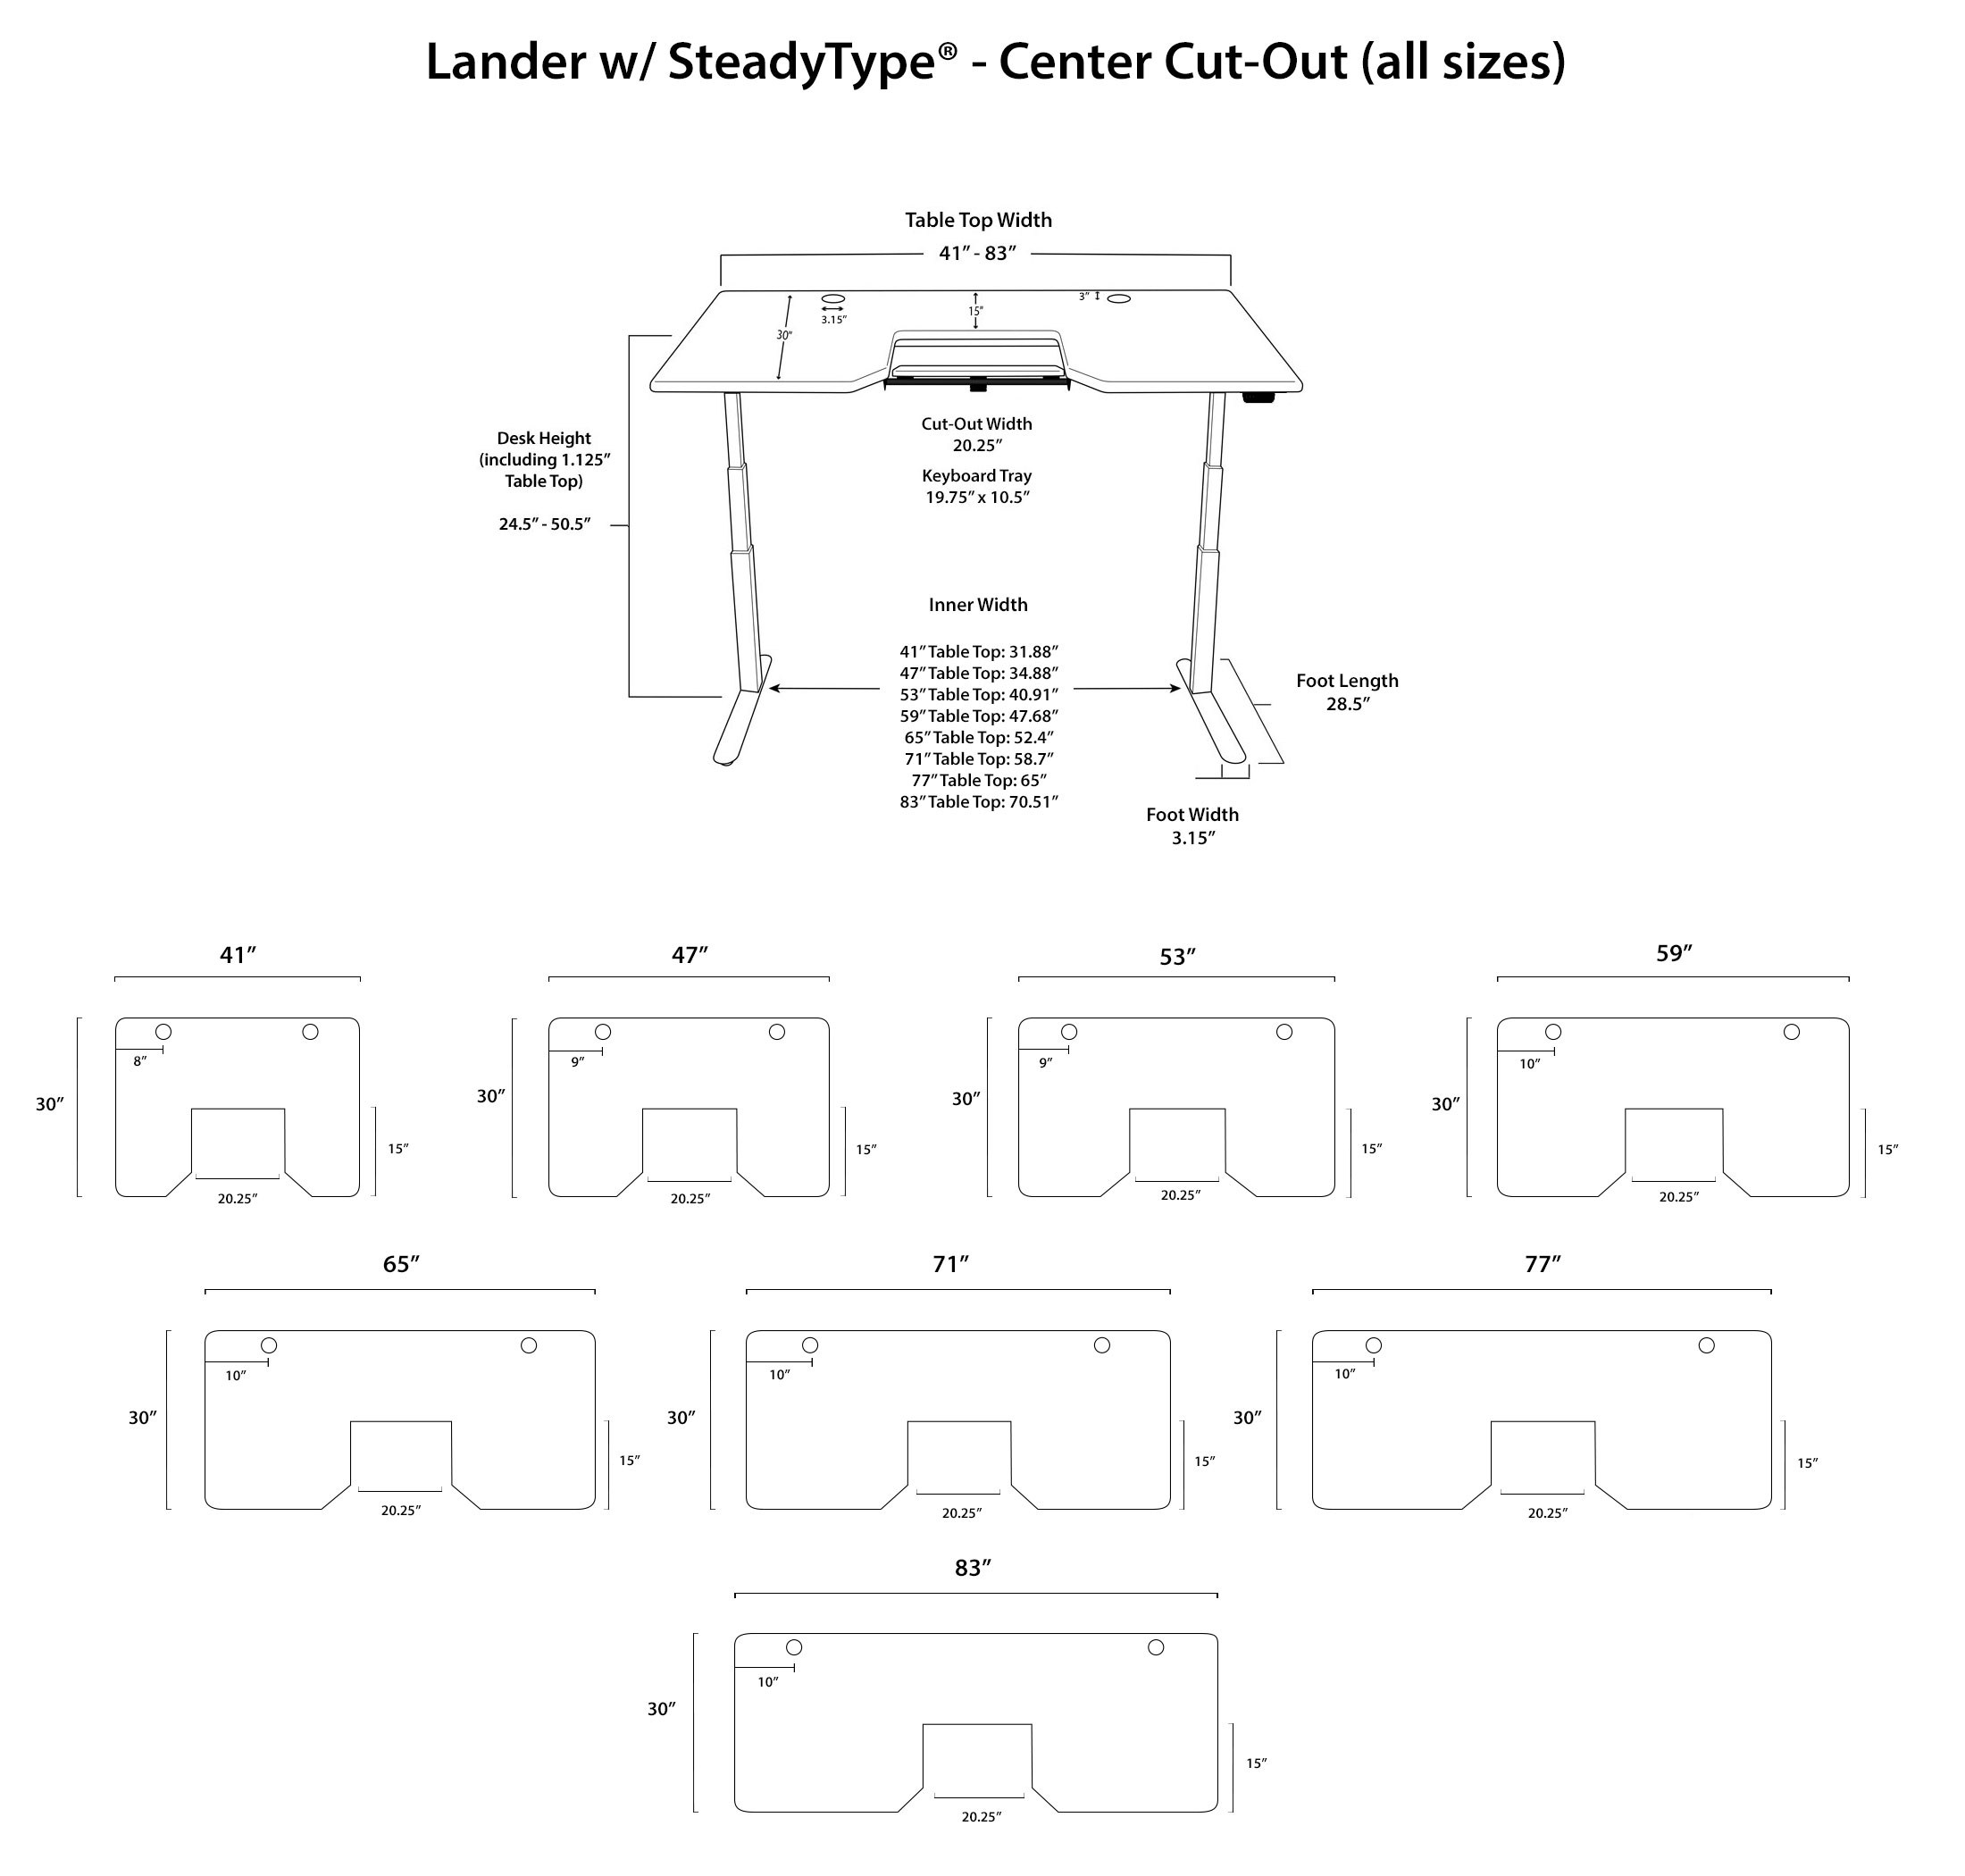 Lander SteadyType Standing Desk - Center Cut Out Diagrams